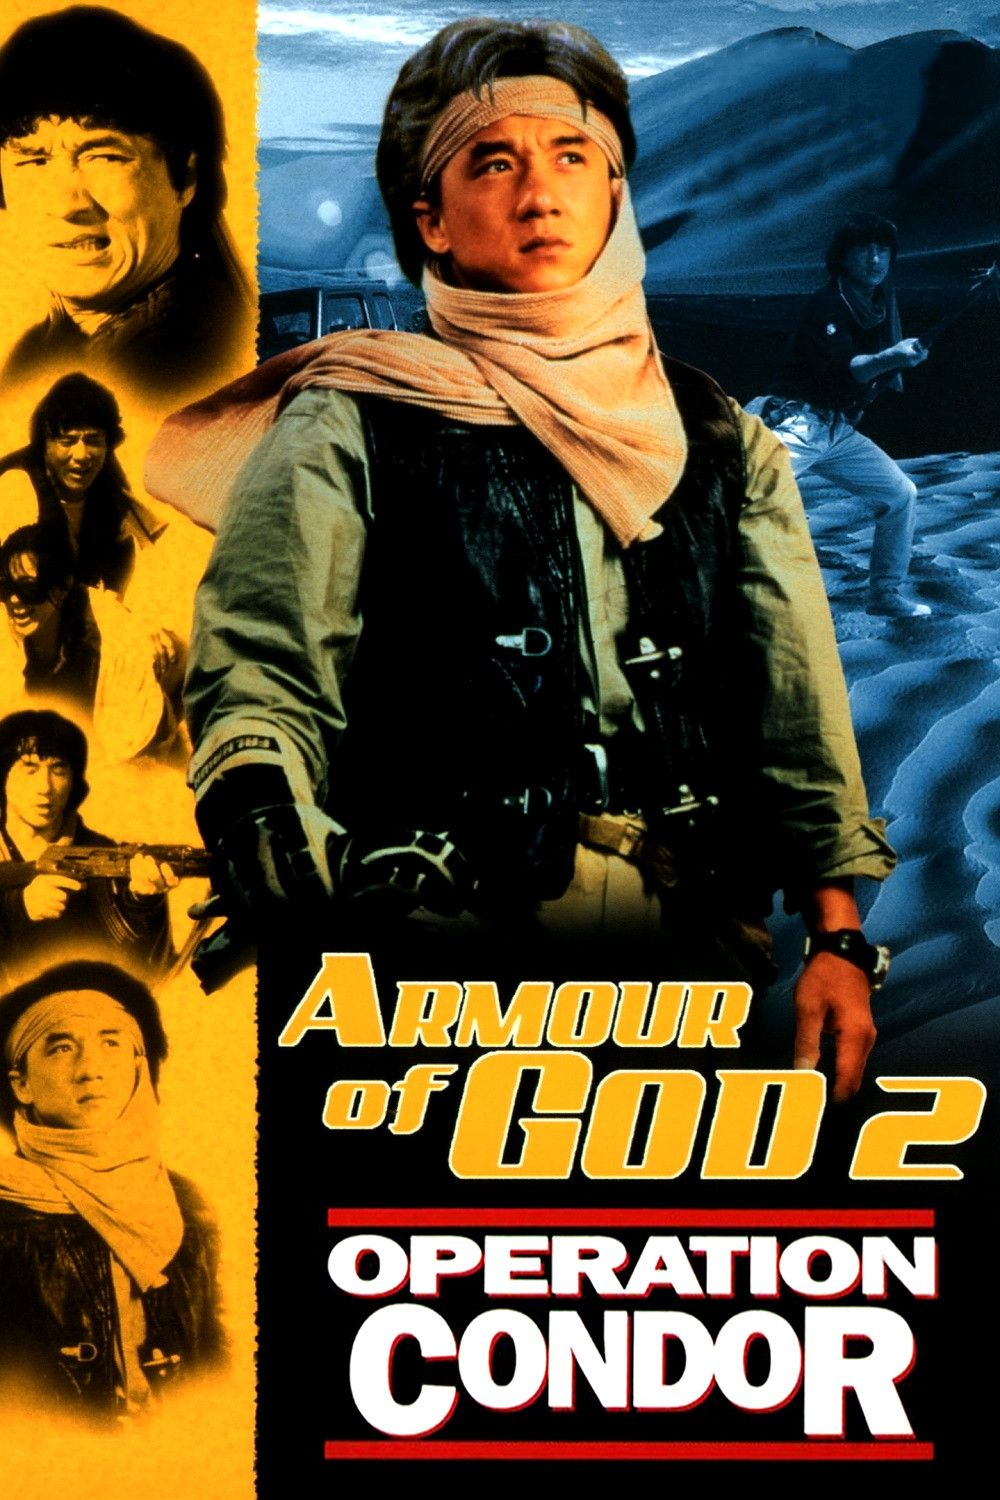 Armour Of God II: Der starke Arm der Götter from Jackie Chan with Jackie  Chan as Jackie